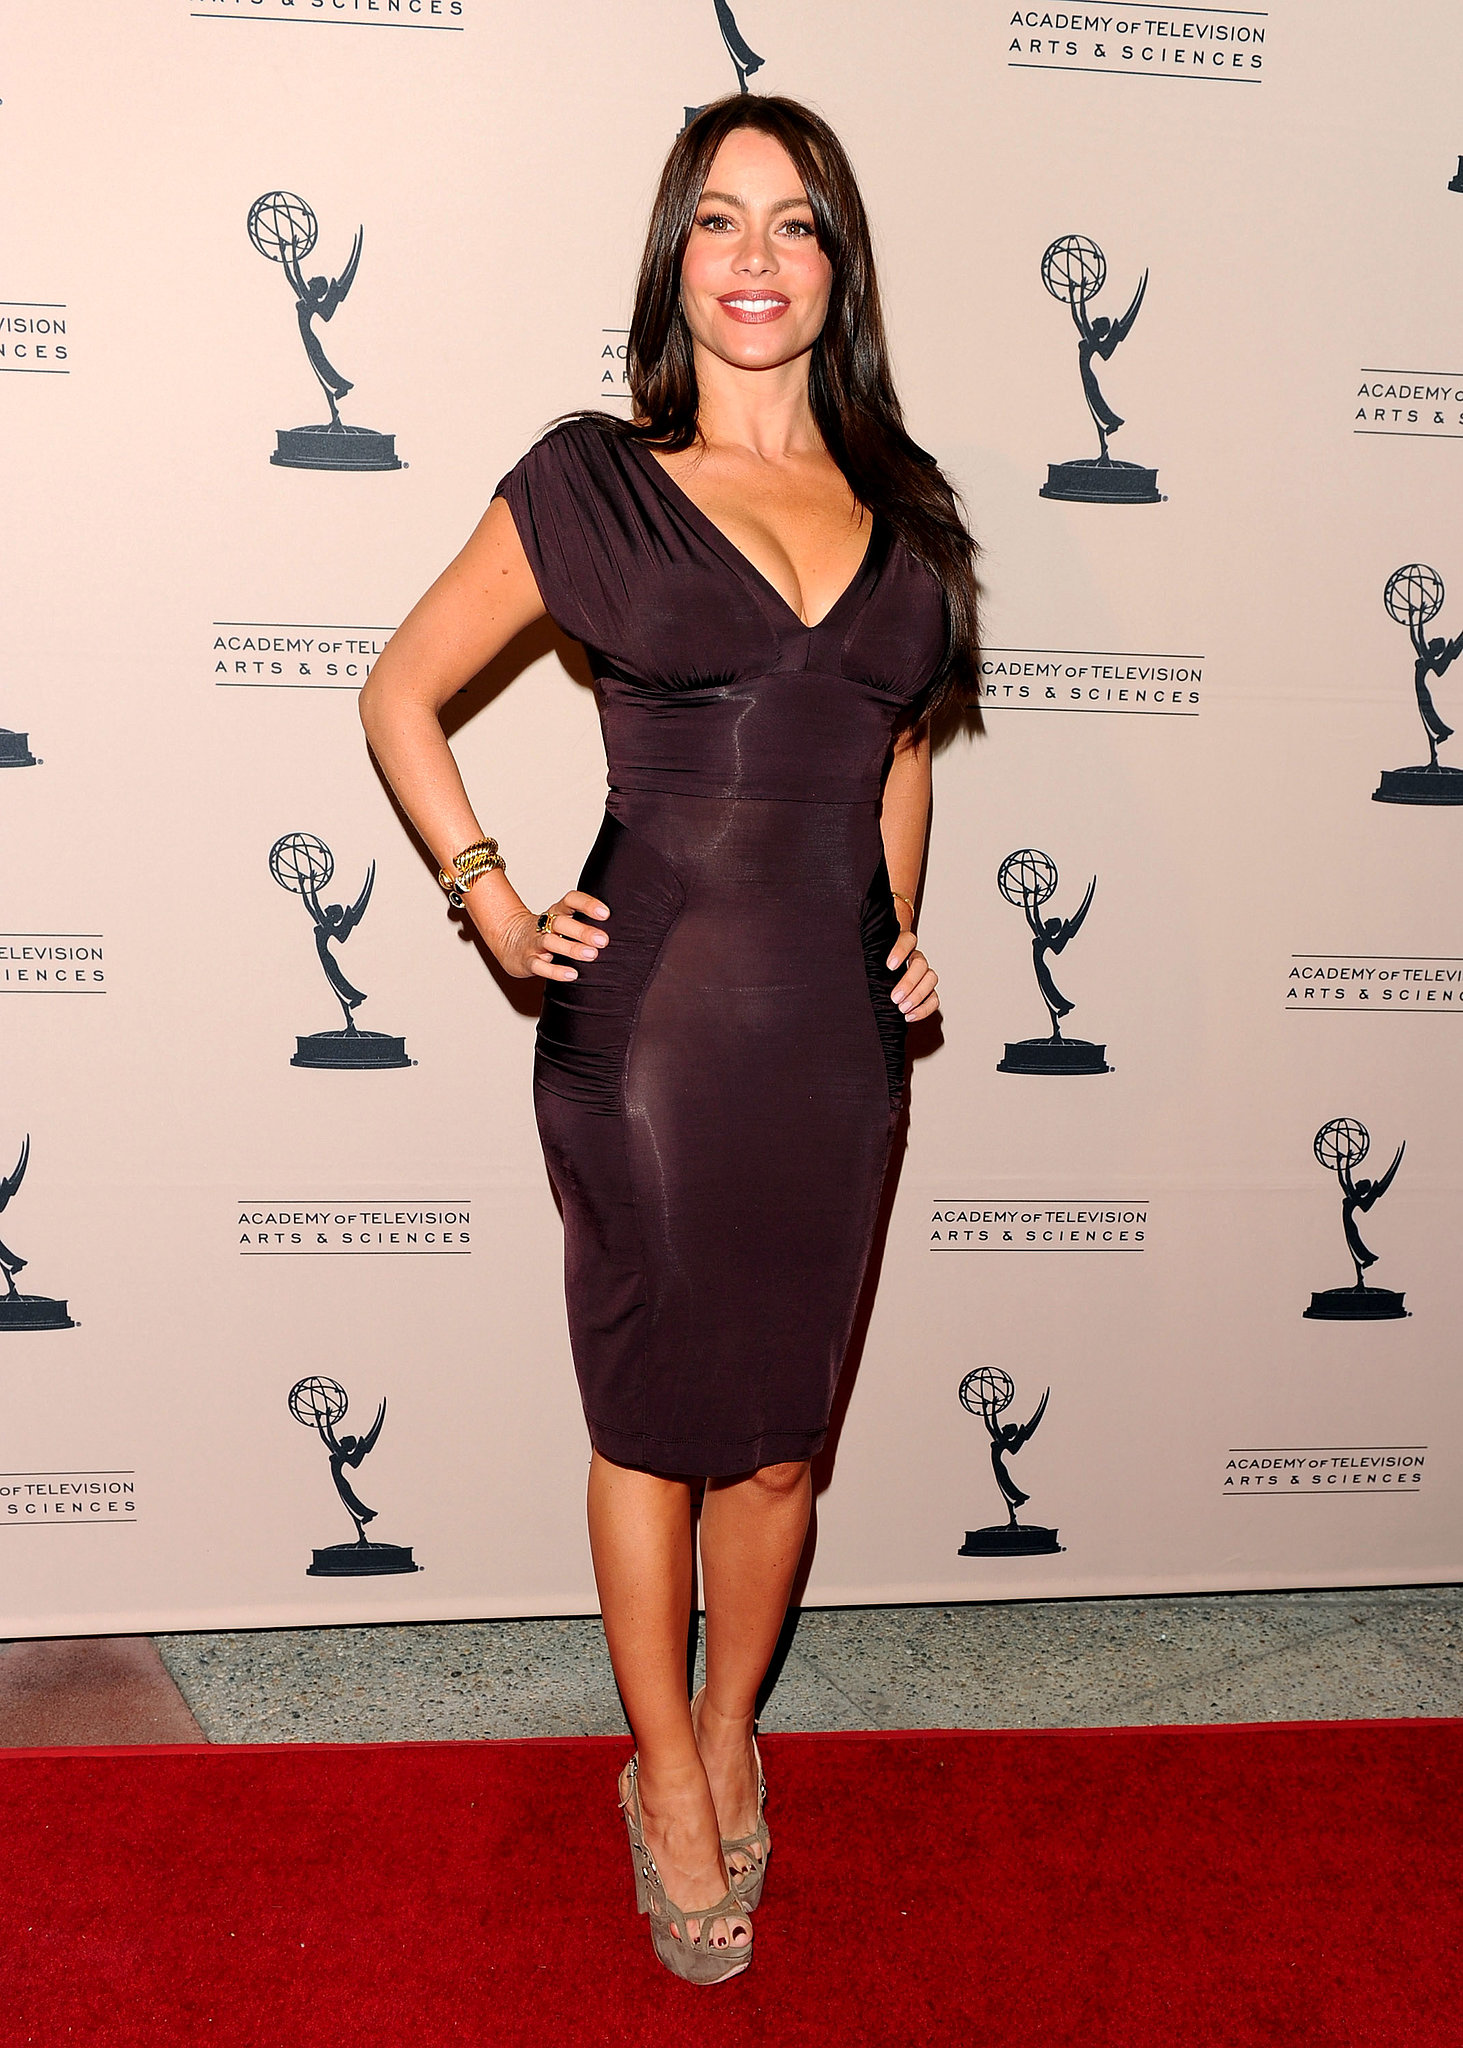 Sofia looked picture perfect in a fitted plum dress and swirly suede peep-toes in March 2010.